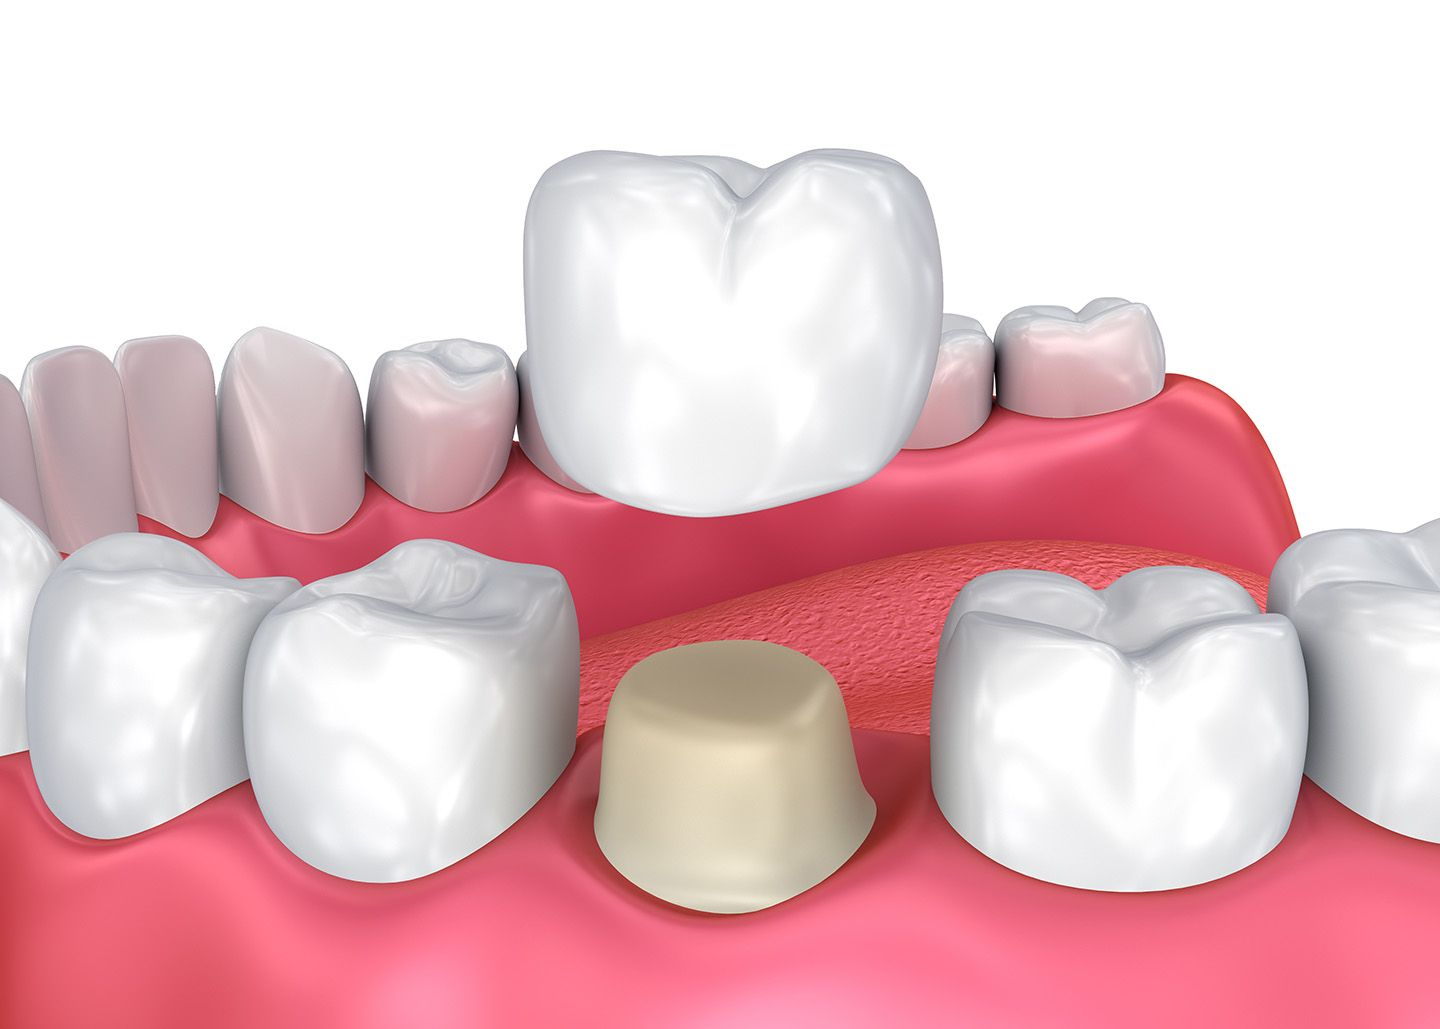 Tooth-colored dental crown